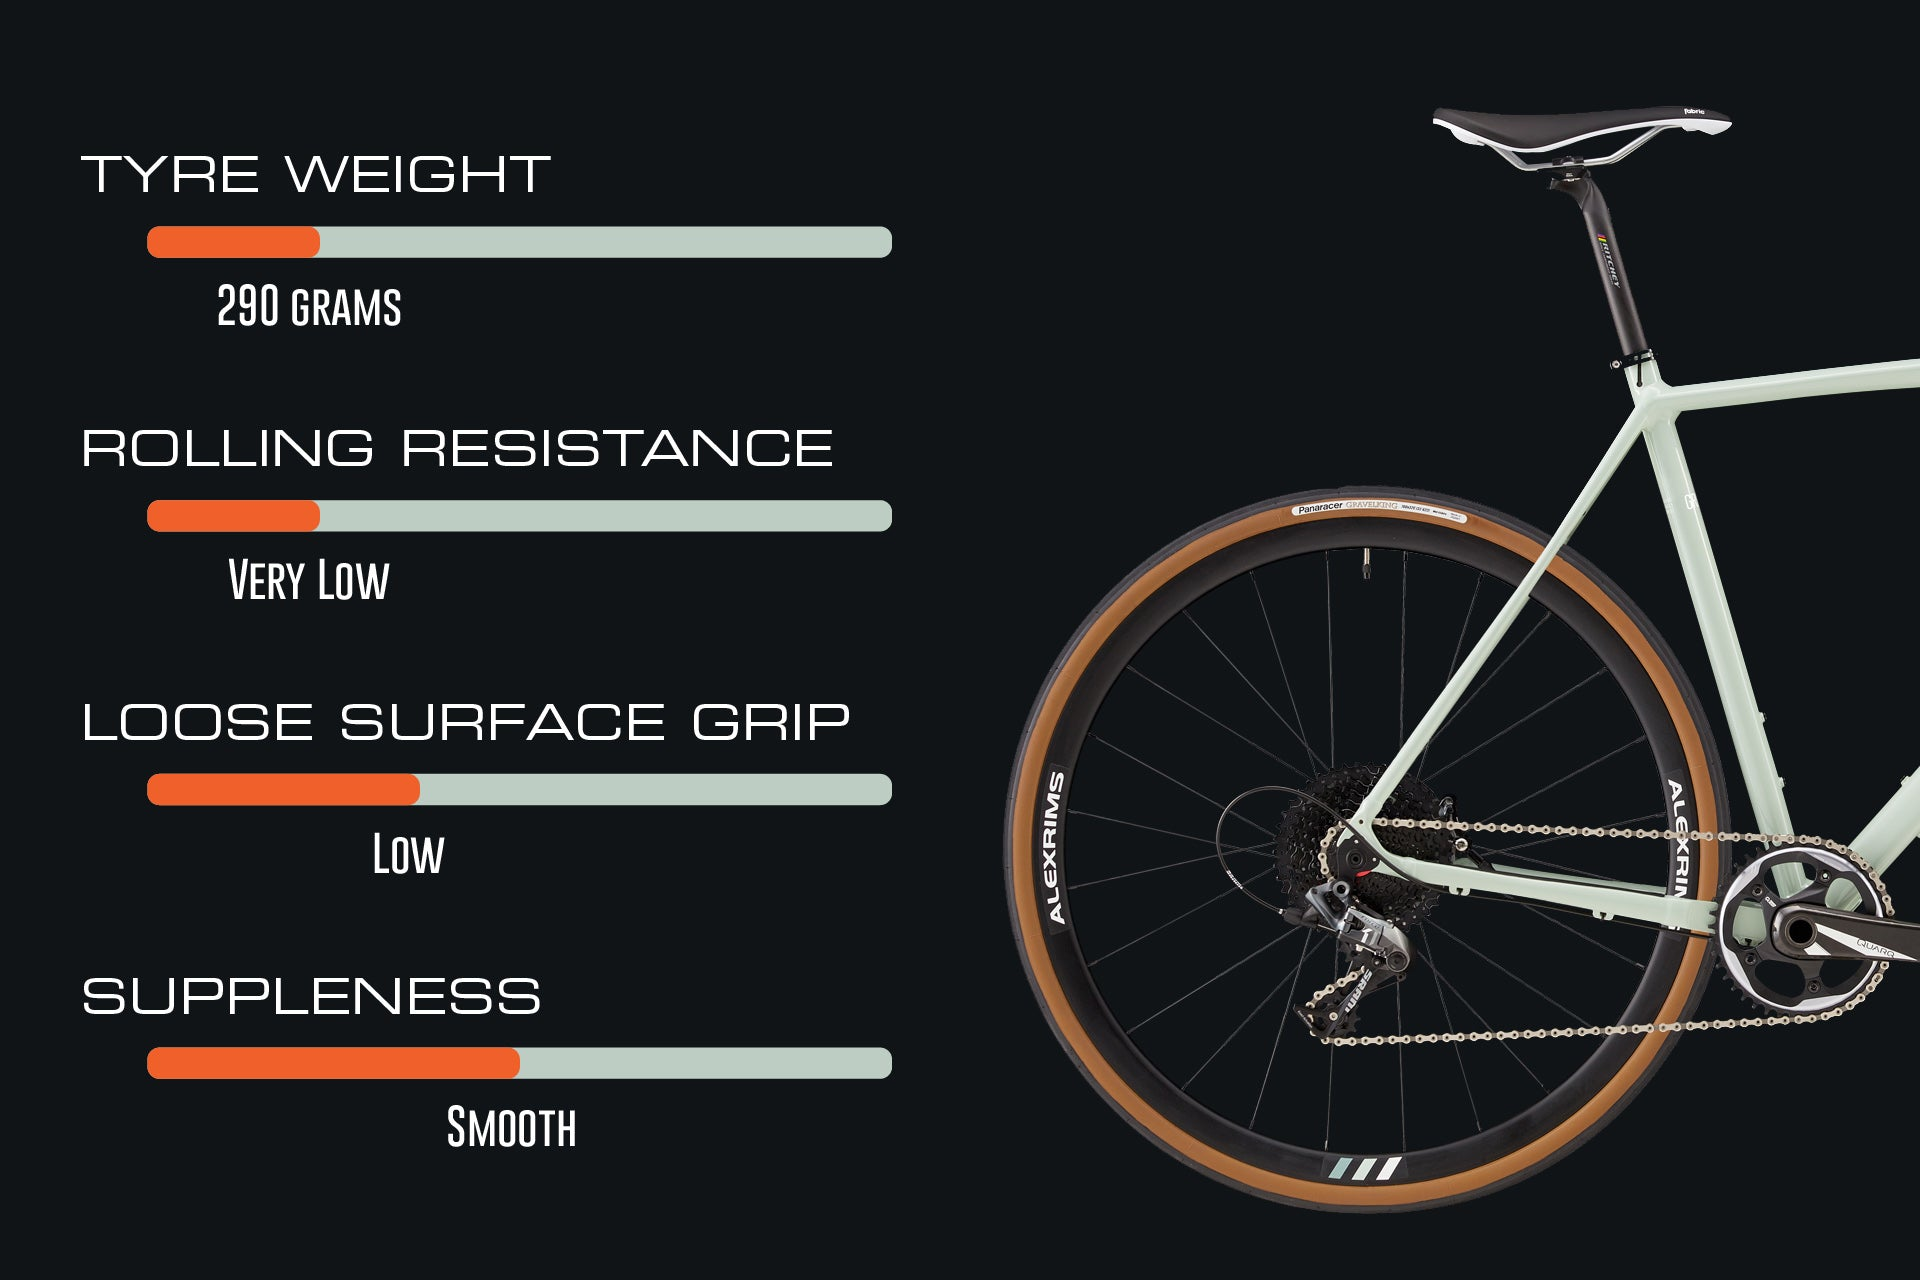 Panaracer gravelking features 700x32